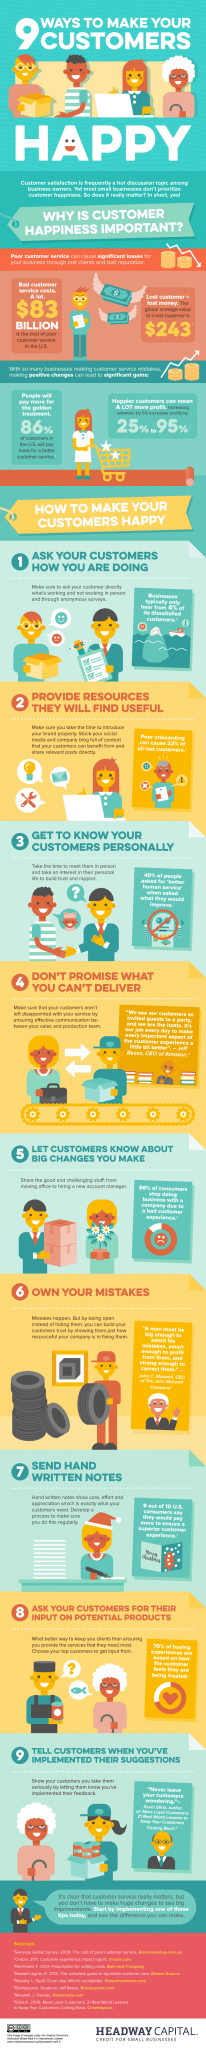 Photo of 9 Ways to Make Your Customers Happy [INFOGRAPHIC]